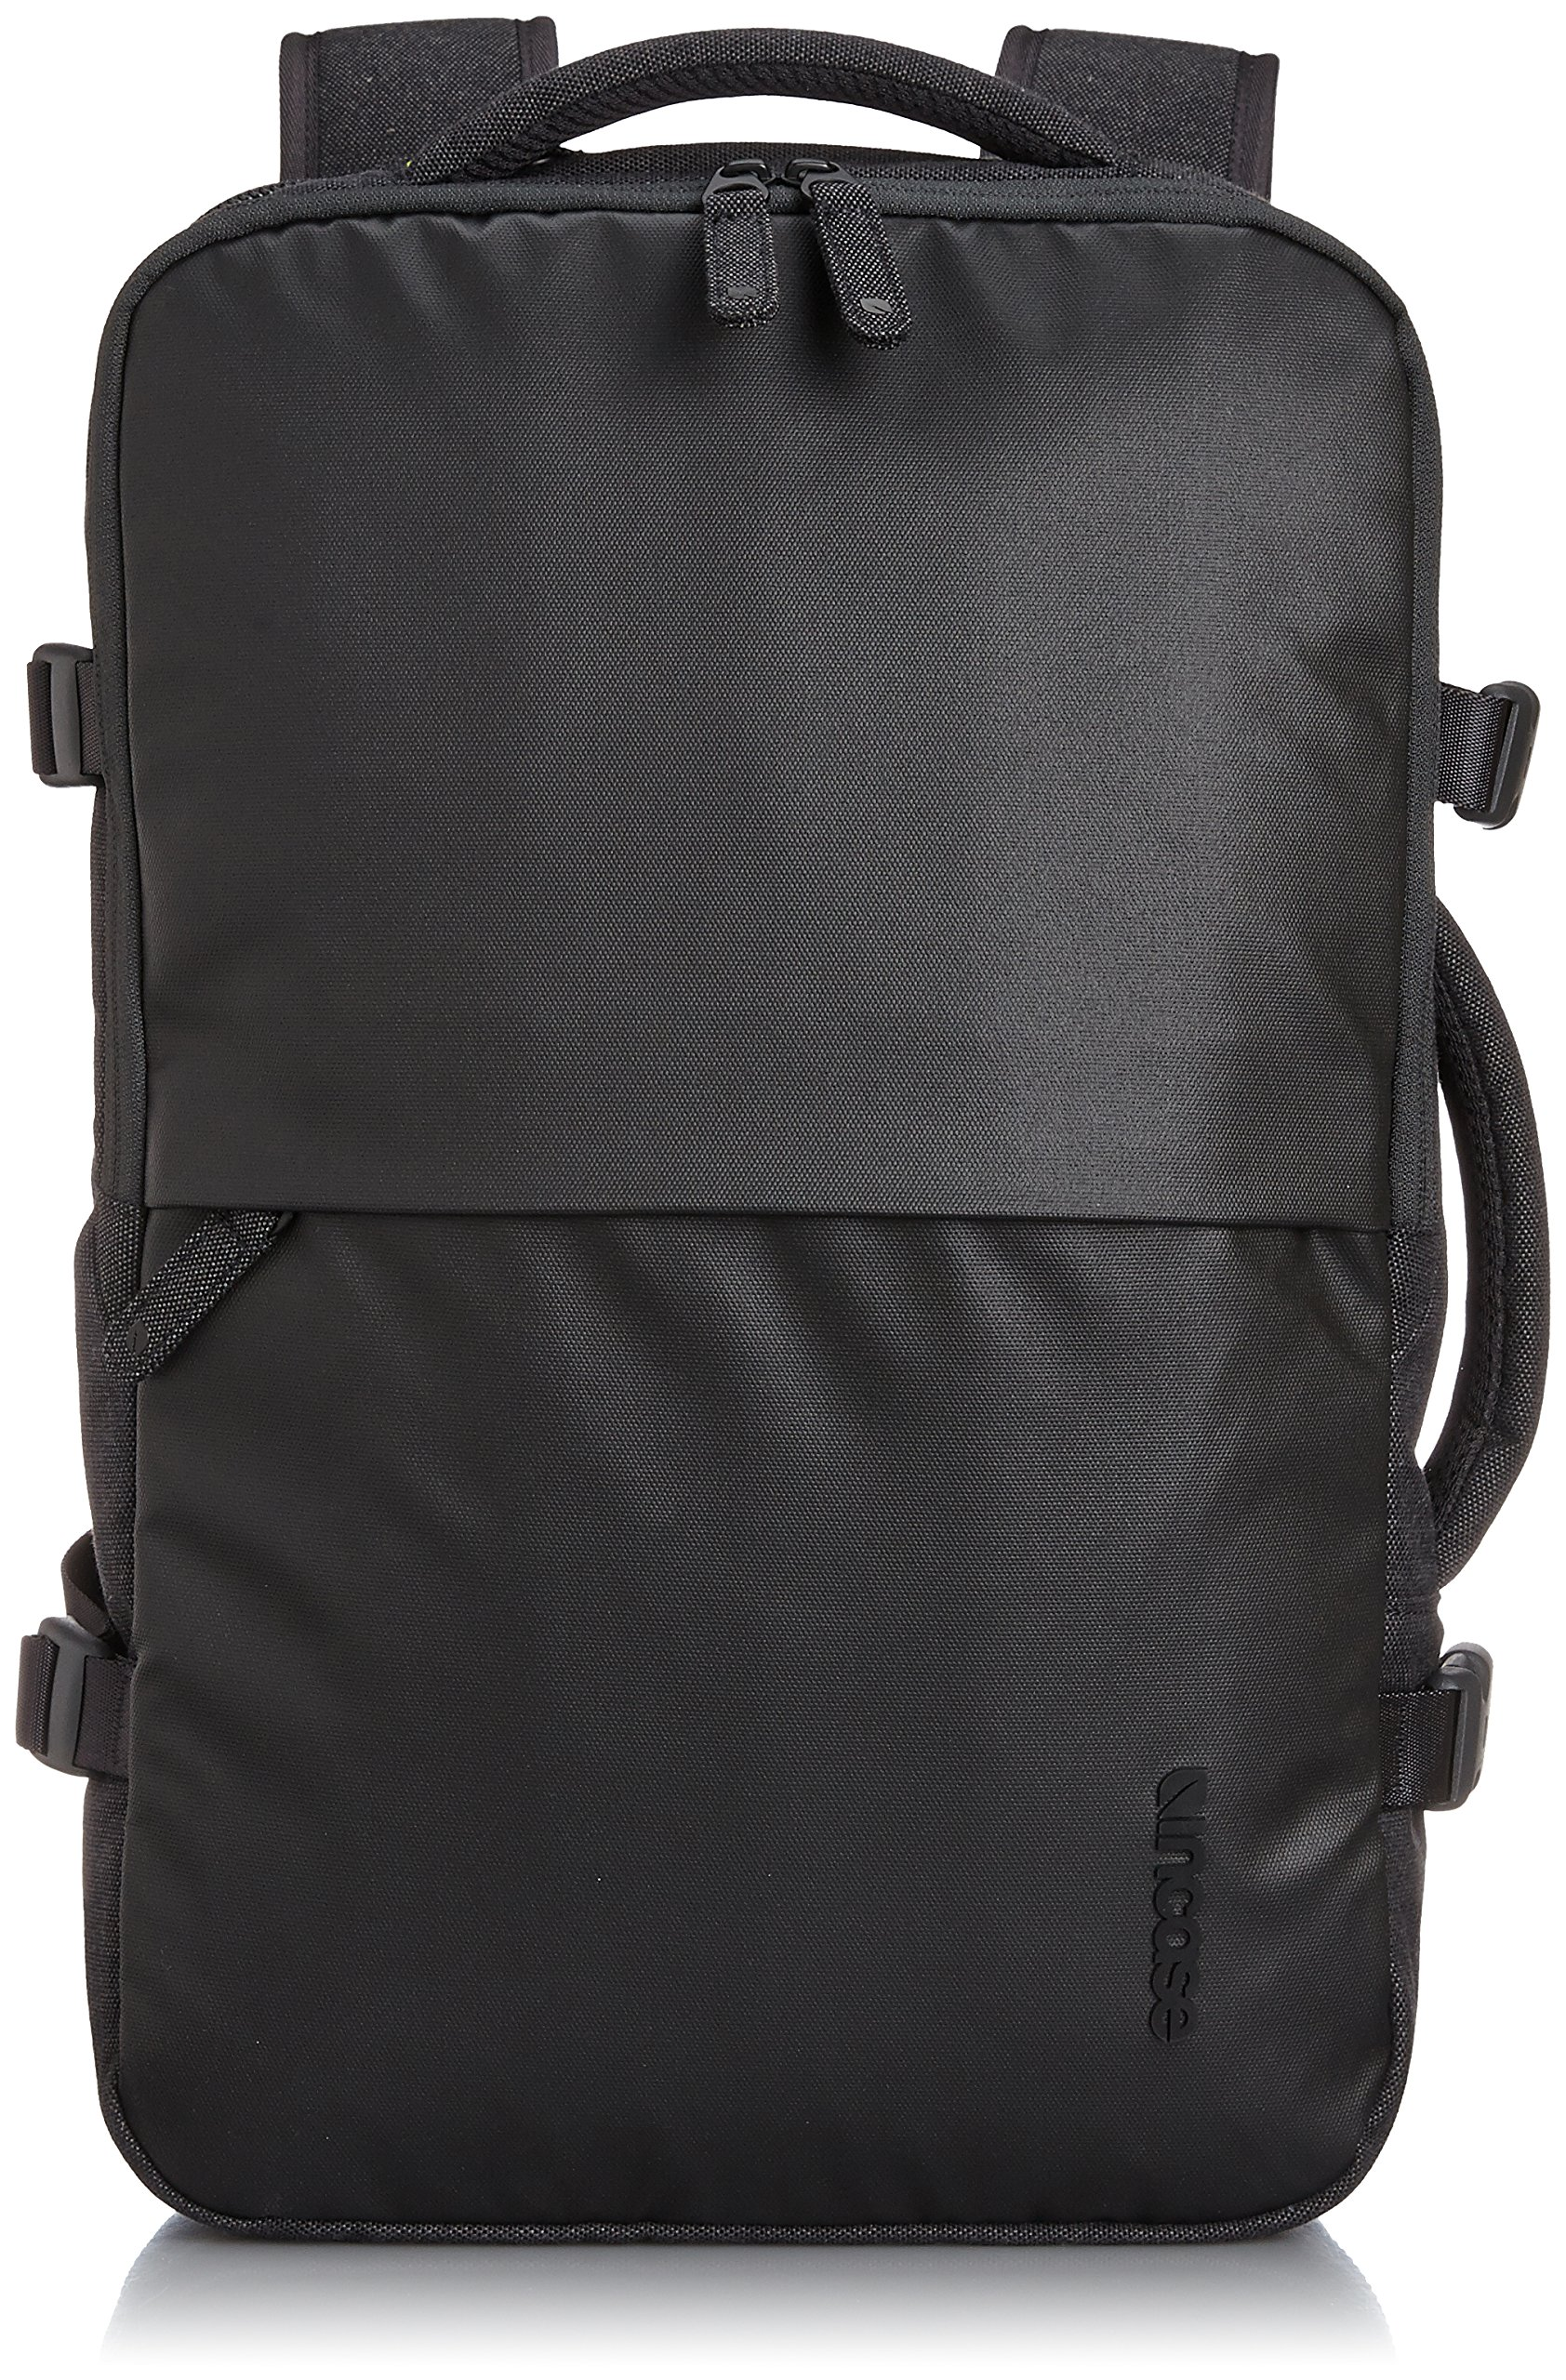 Incase EO Travel Backpack (Black) fits up to 17'' MacBook Pro